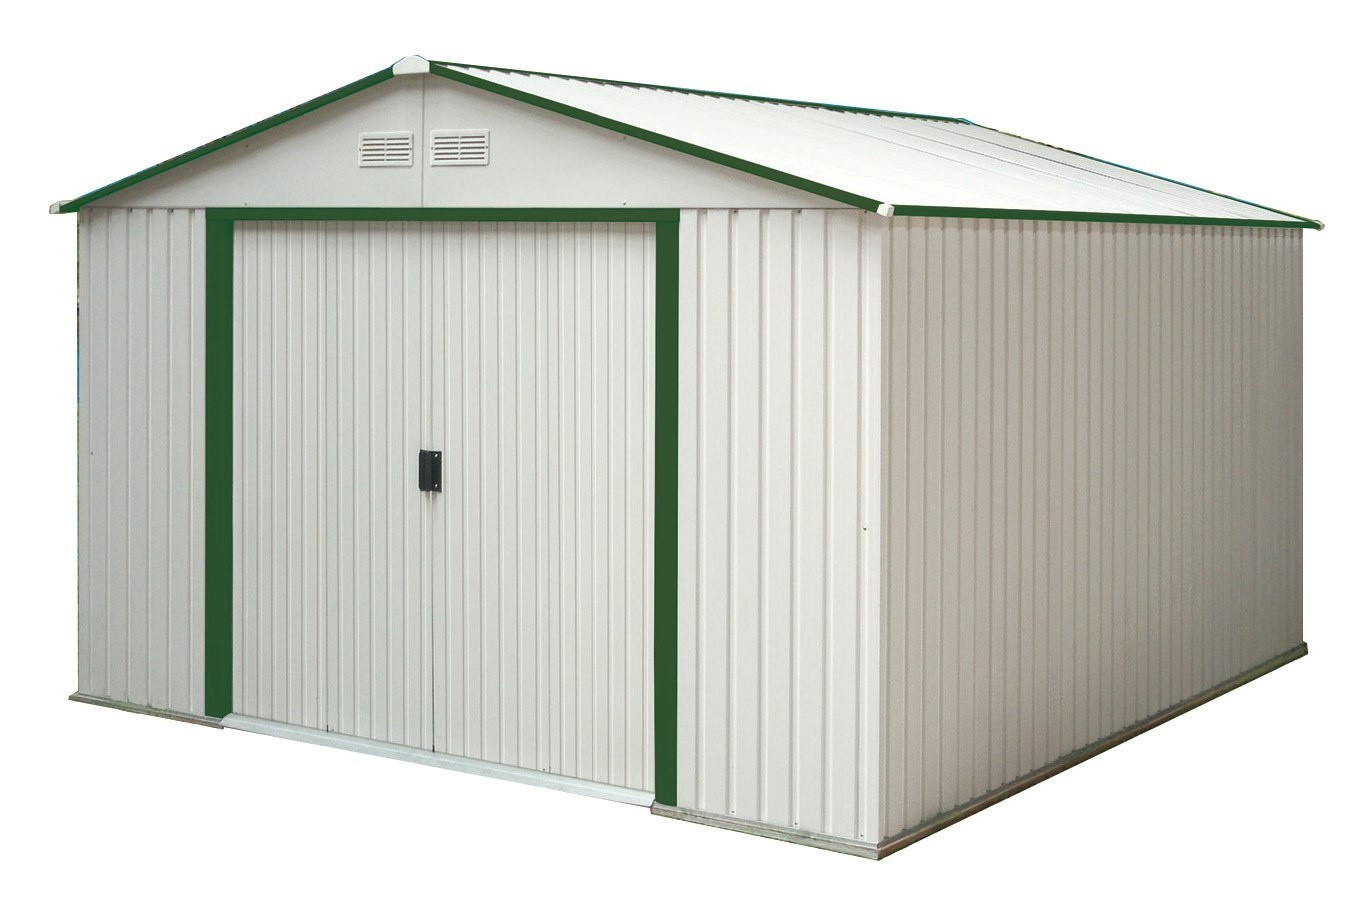 metal sheds duramax metal shed model 50511 HJCWJTV